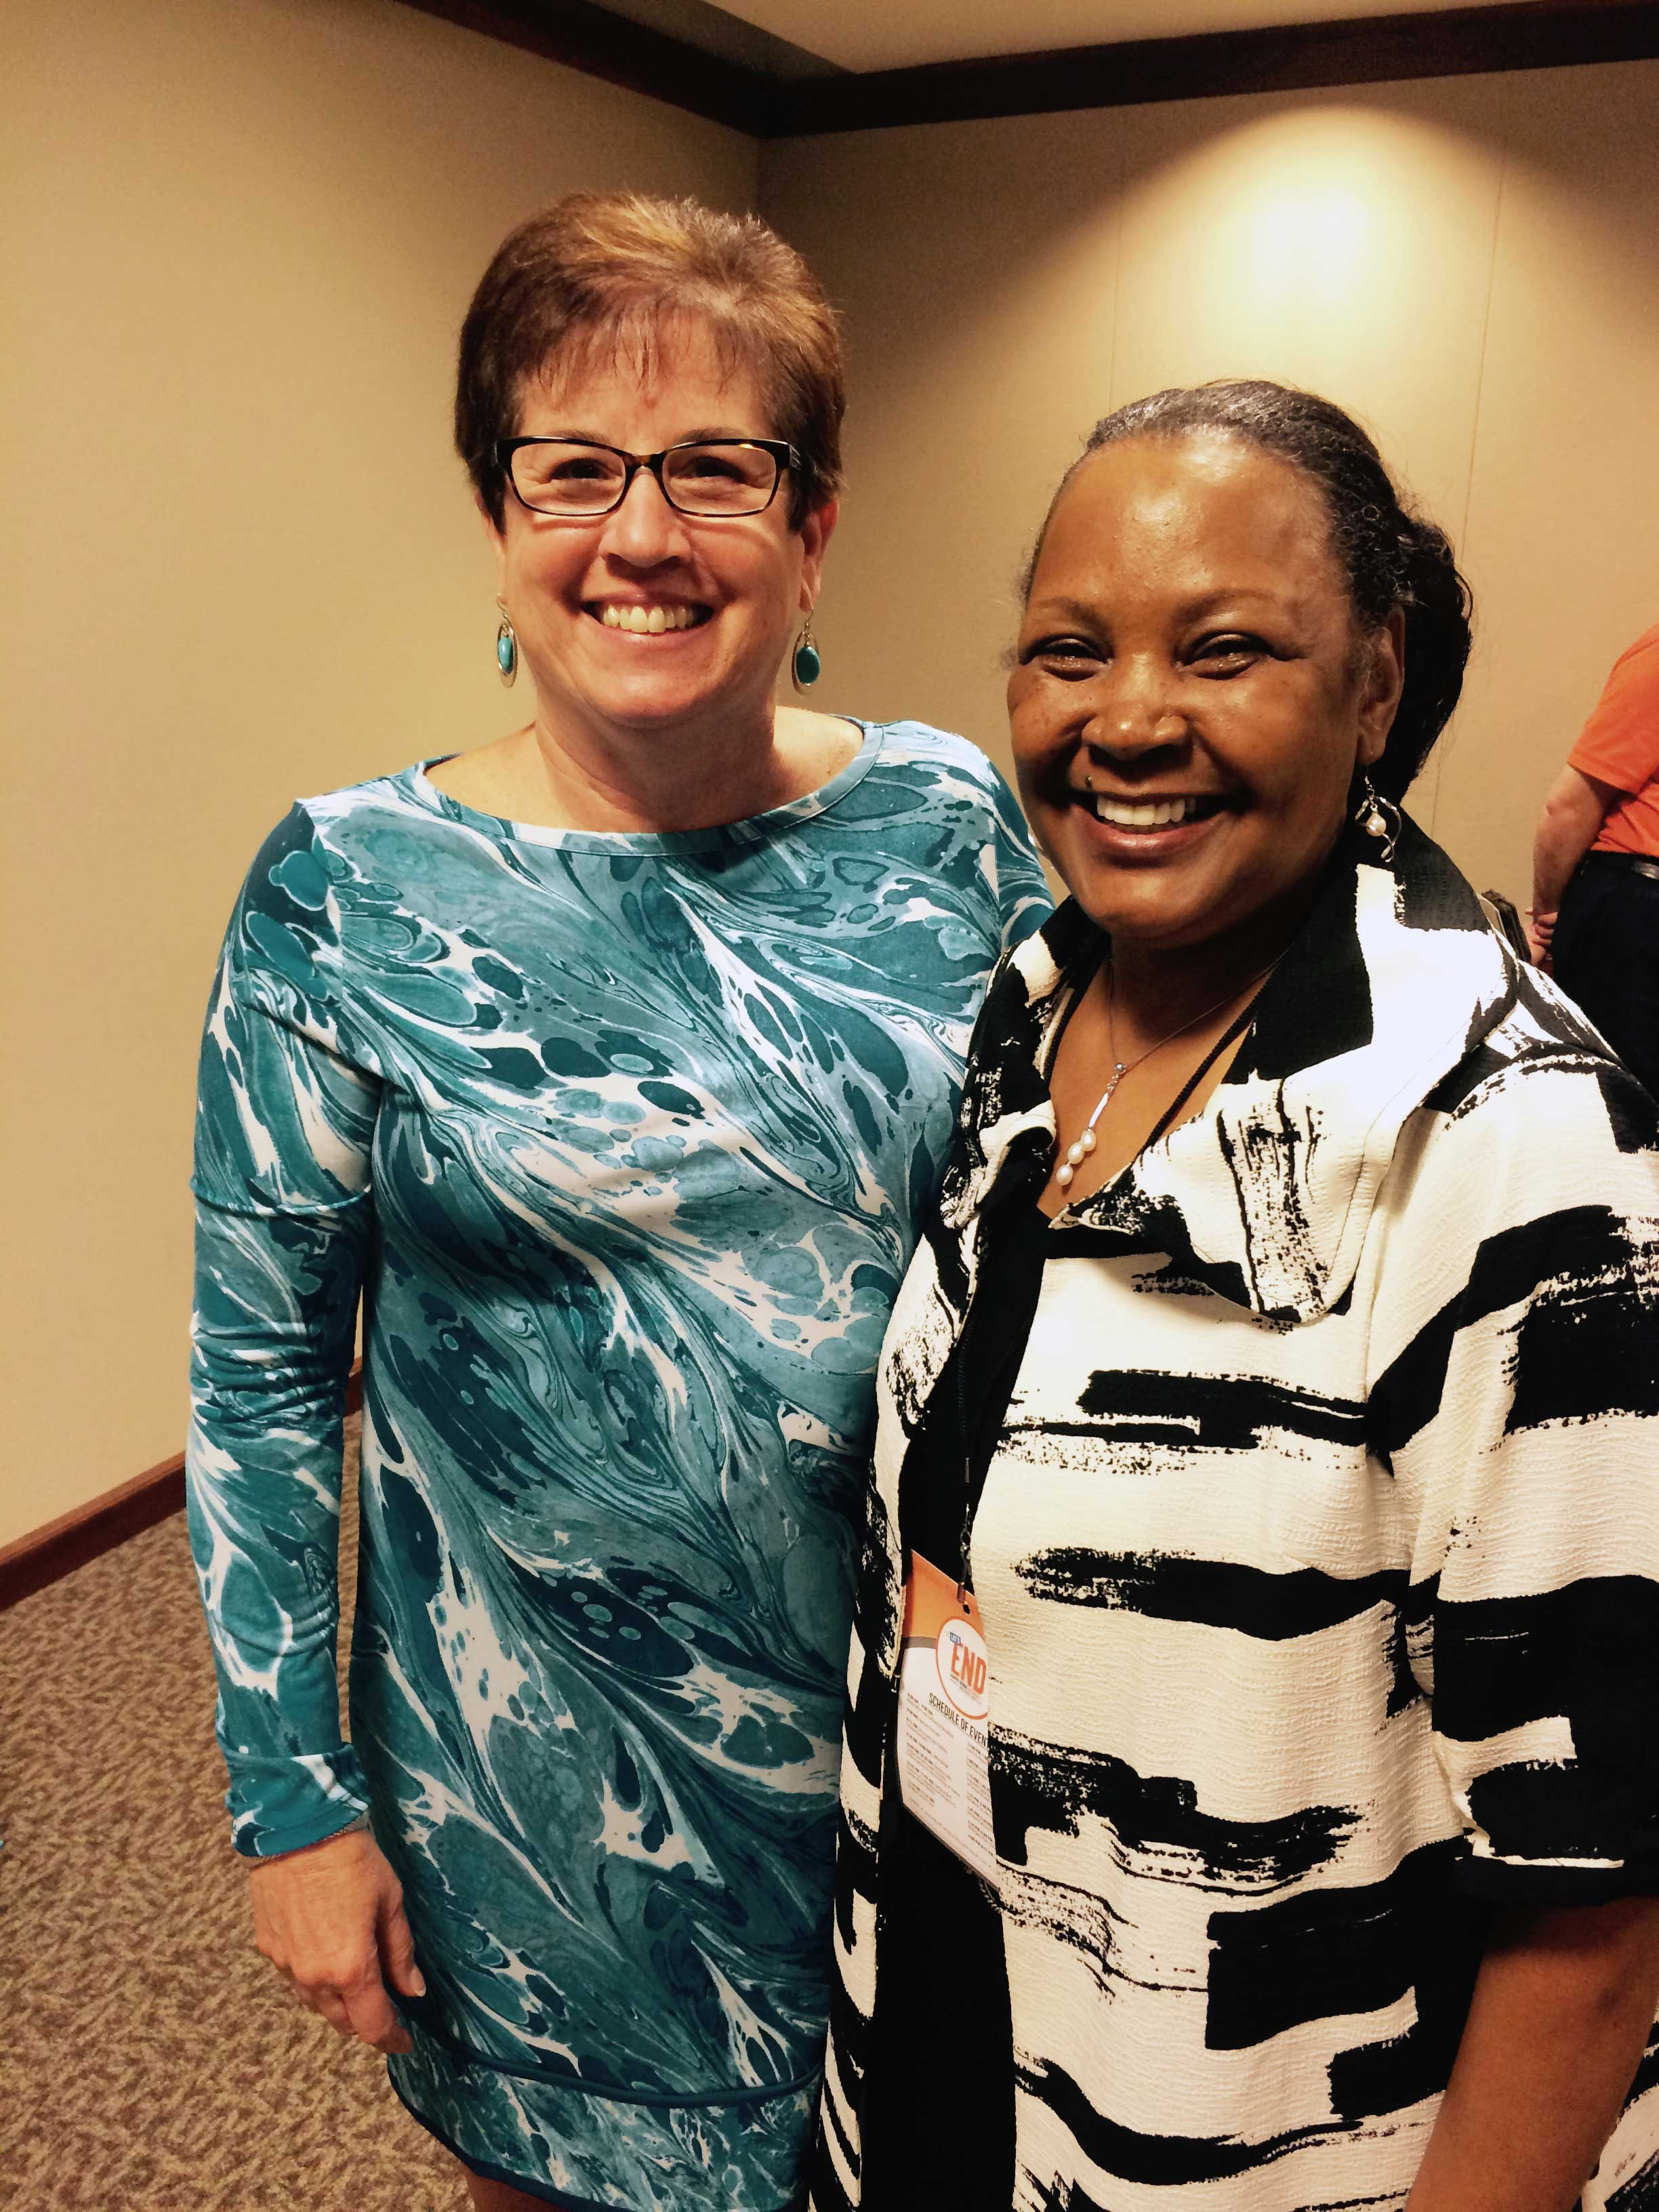 Dr. Mamie Thorns and Michigan's first lady, Mrs. Sue Snyder, in Lansing on Monday, June 8 at the state's first summit to discuss best practices for preventing and ending sexual assaults on college campuses.